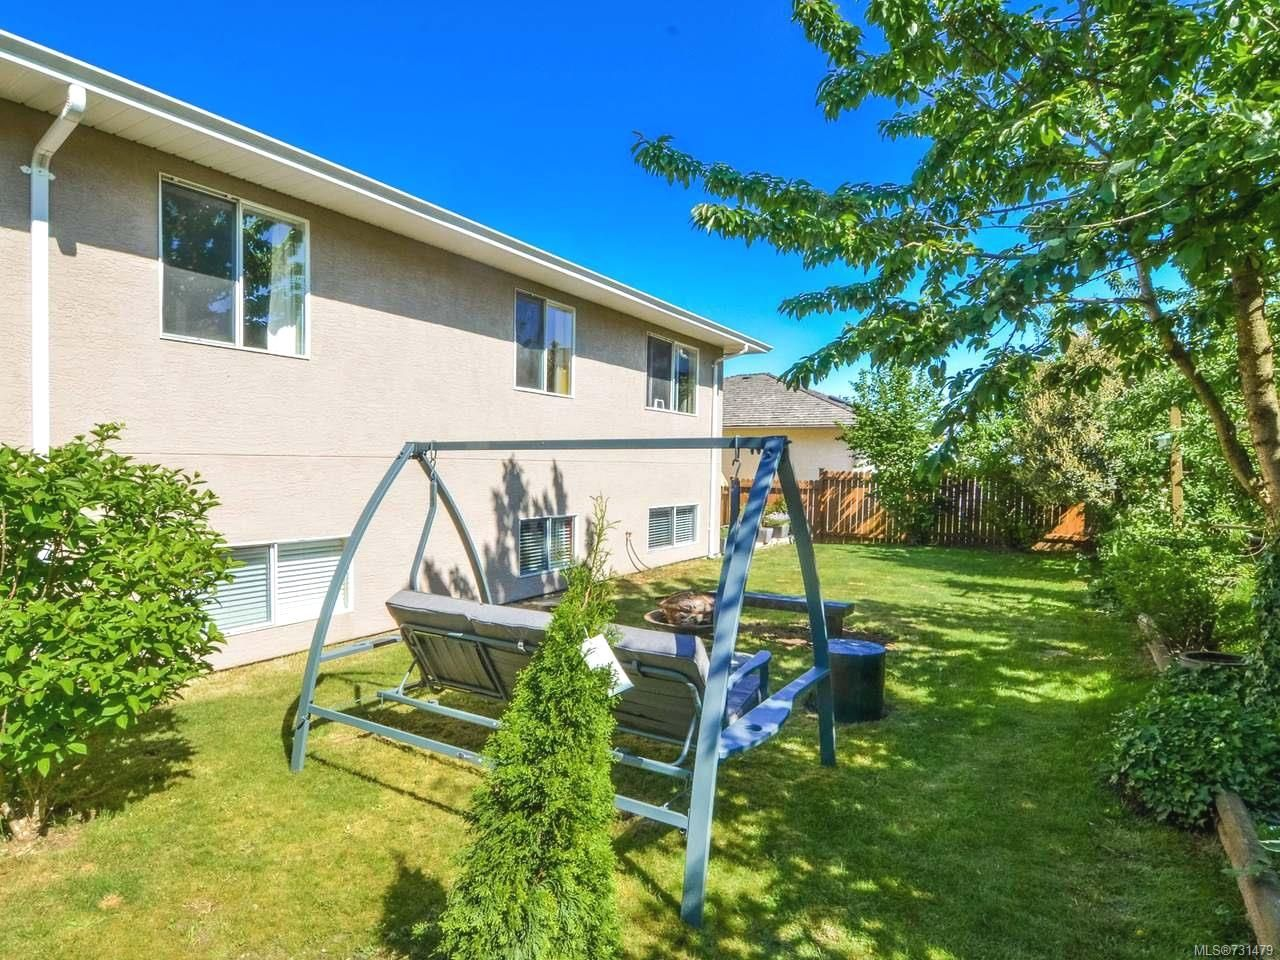 Photo 60: Photos: 753 Bowen Dr in CAMPBELL RIVER: CR Willow Point House for sale (Campbell River)  : MLS®# 731479